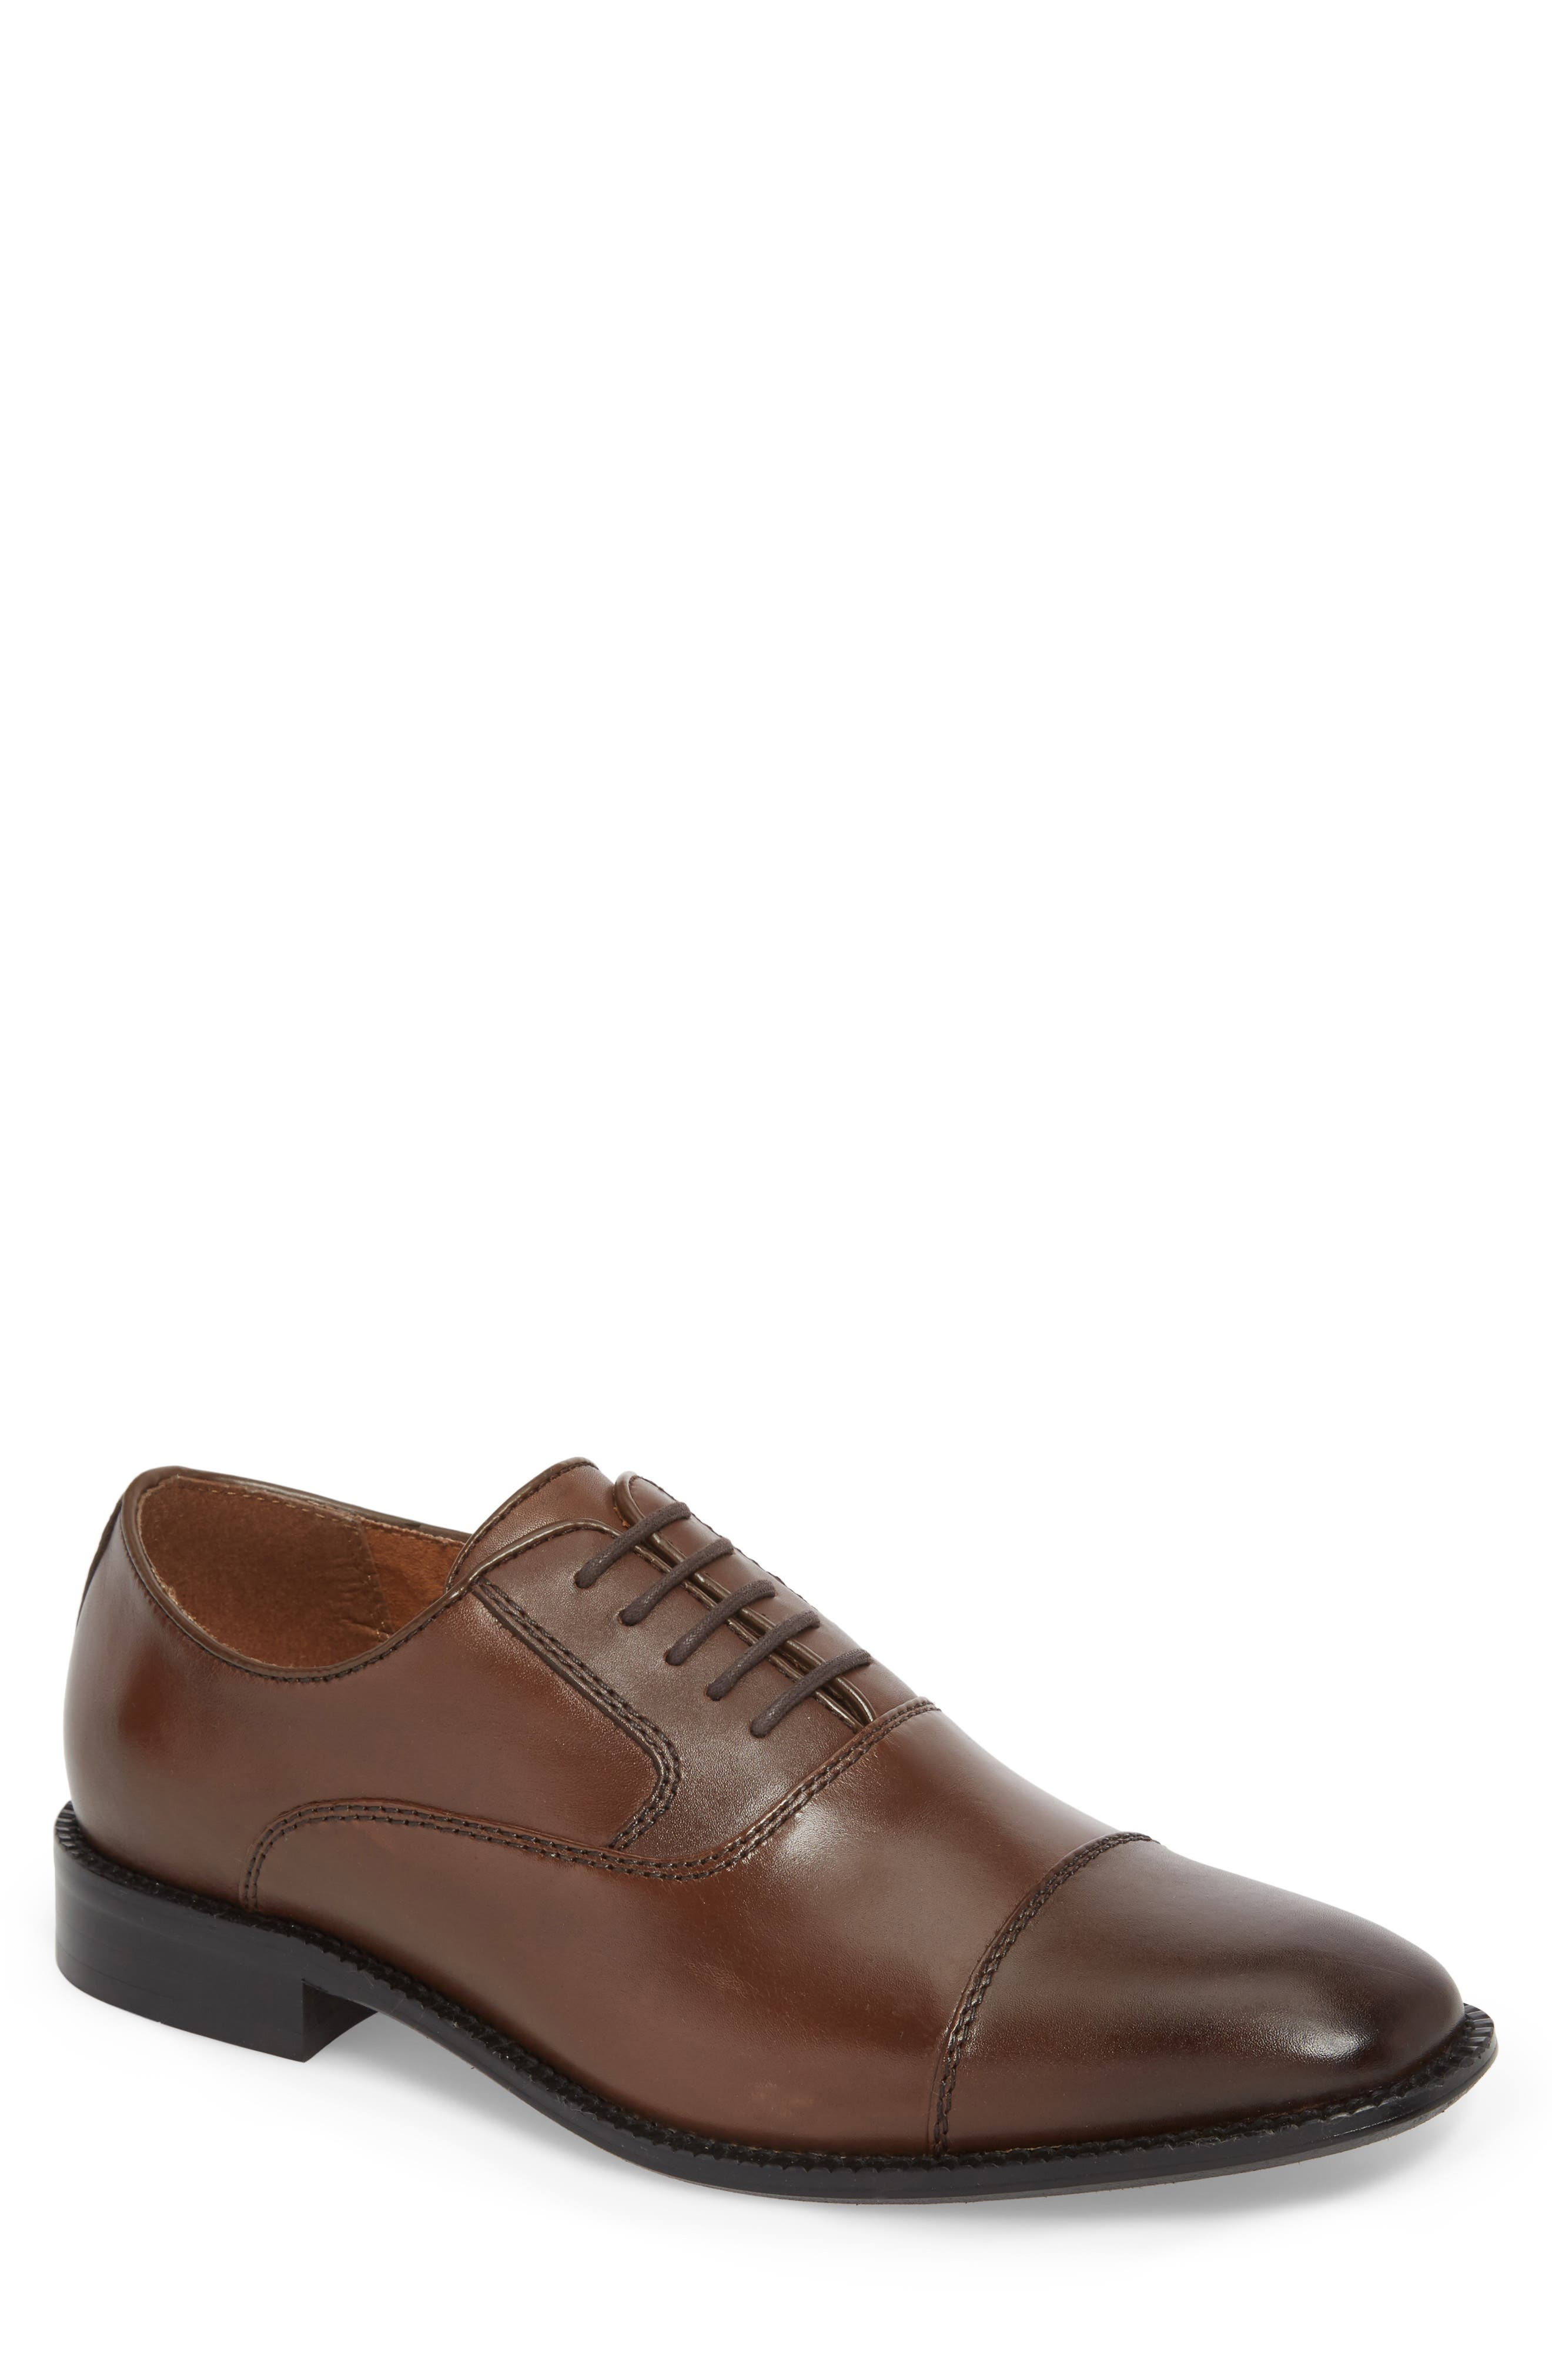 Dice Cap Toe Oxford,                         Main,                         color, Brown Leather